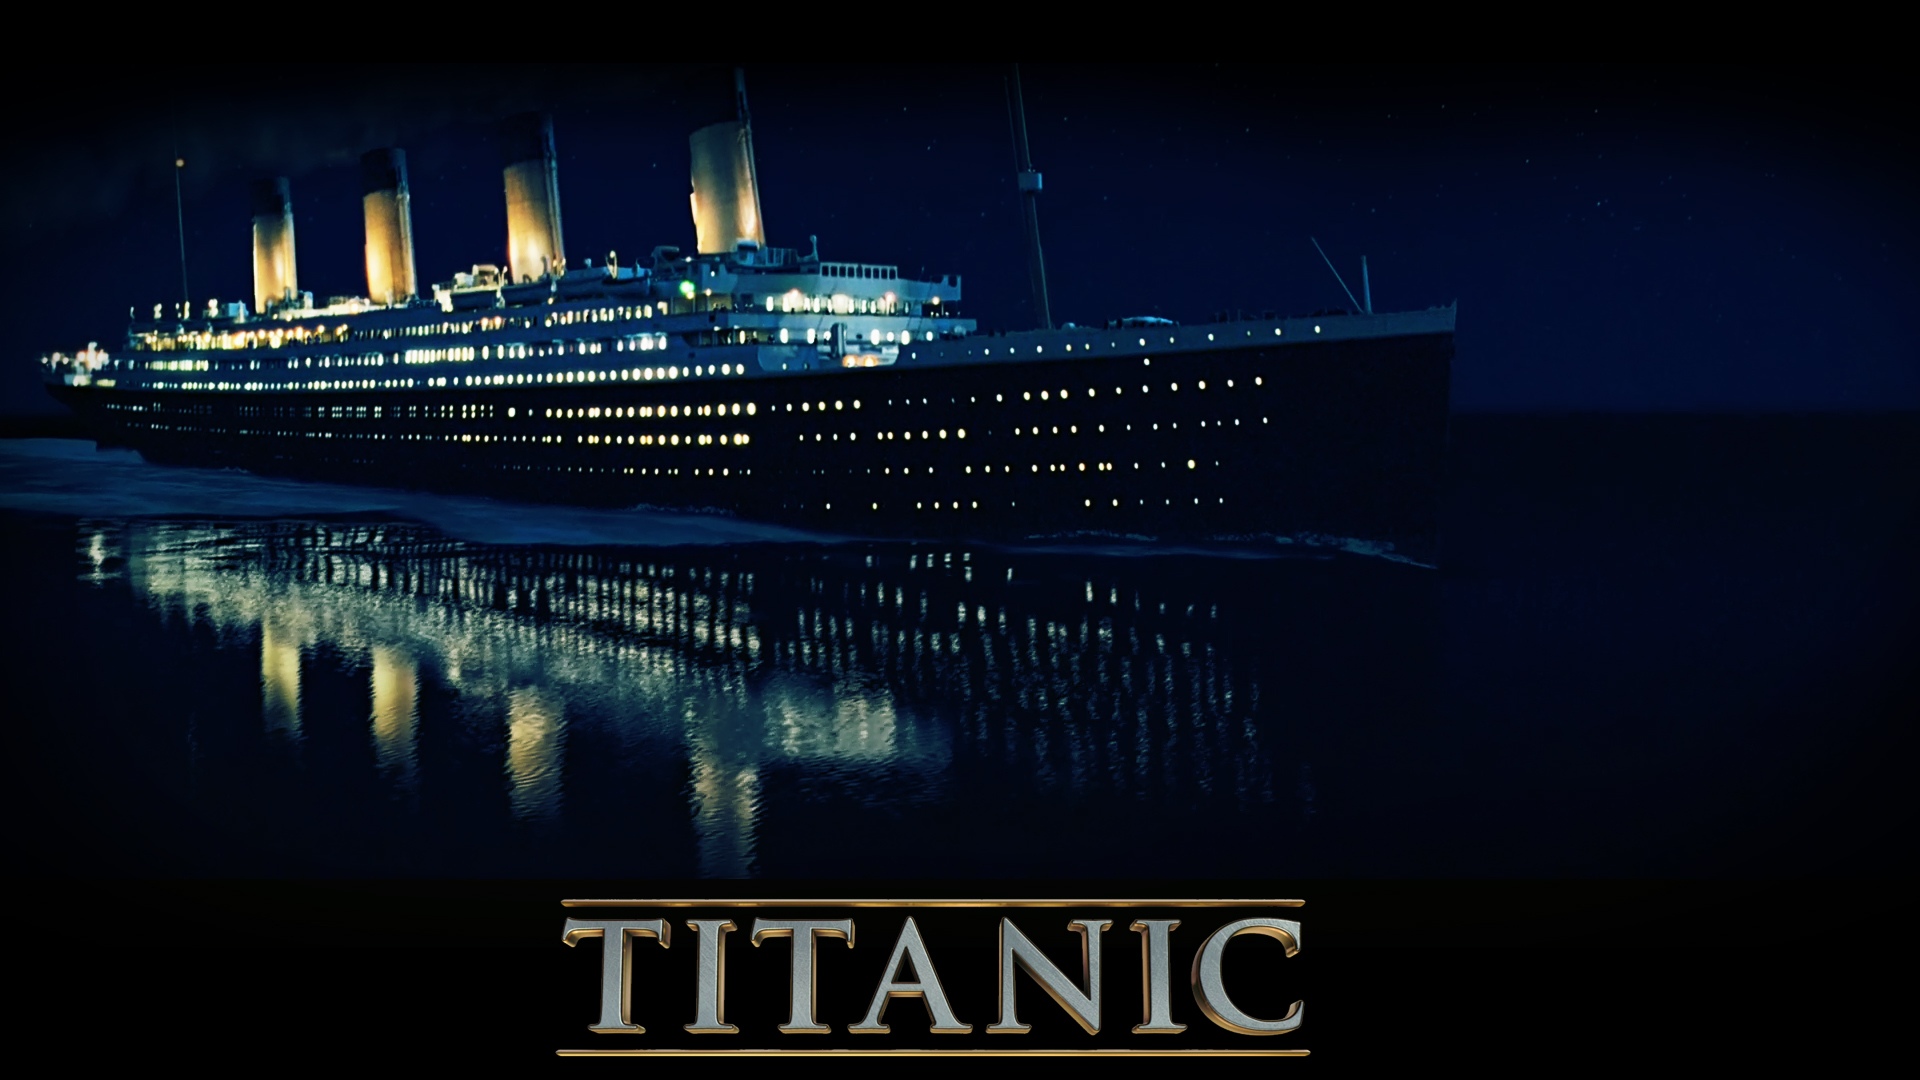 titanc essays Read this essay on titanic essay come browse our large digital warehouse of free sample essays get the knowledge you need in order to pass your classes and more.